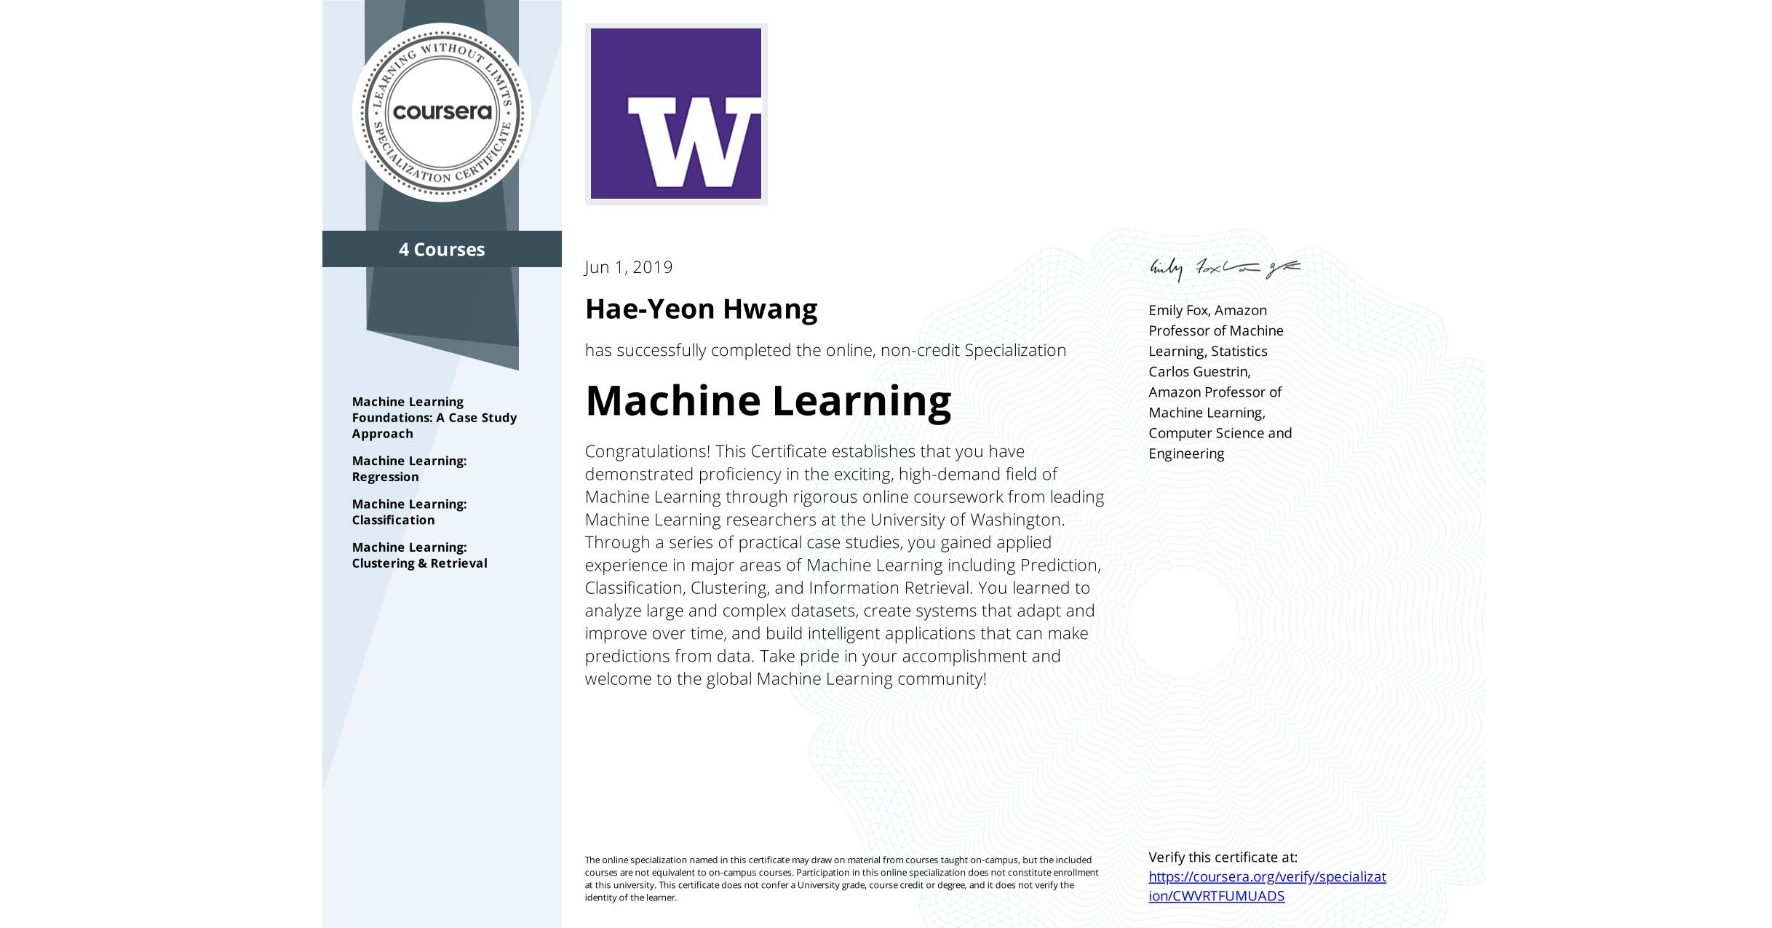 View certificate for Hae-Yeon Hwang, Machine Learning, offered through Coursera. Congratulations! This Certificate establishes that you have demonstrated proficiency in the exciting, high-demand field of Machine Learning through rigorous online coursework from leading Machine Learning researchers at the University of Washington. Through a series of practical case studies, you gained applied experience in major areas of Machine Learning including Prediction, Classification, Clustering, and Information Retrieval. You learned to analyze large and complex datasets, create systems that adapt and improve over time, and build intelligent applications that can make predictions from data. Take pride in your accomplishment and welcome to the global Machine Learning community!